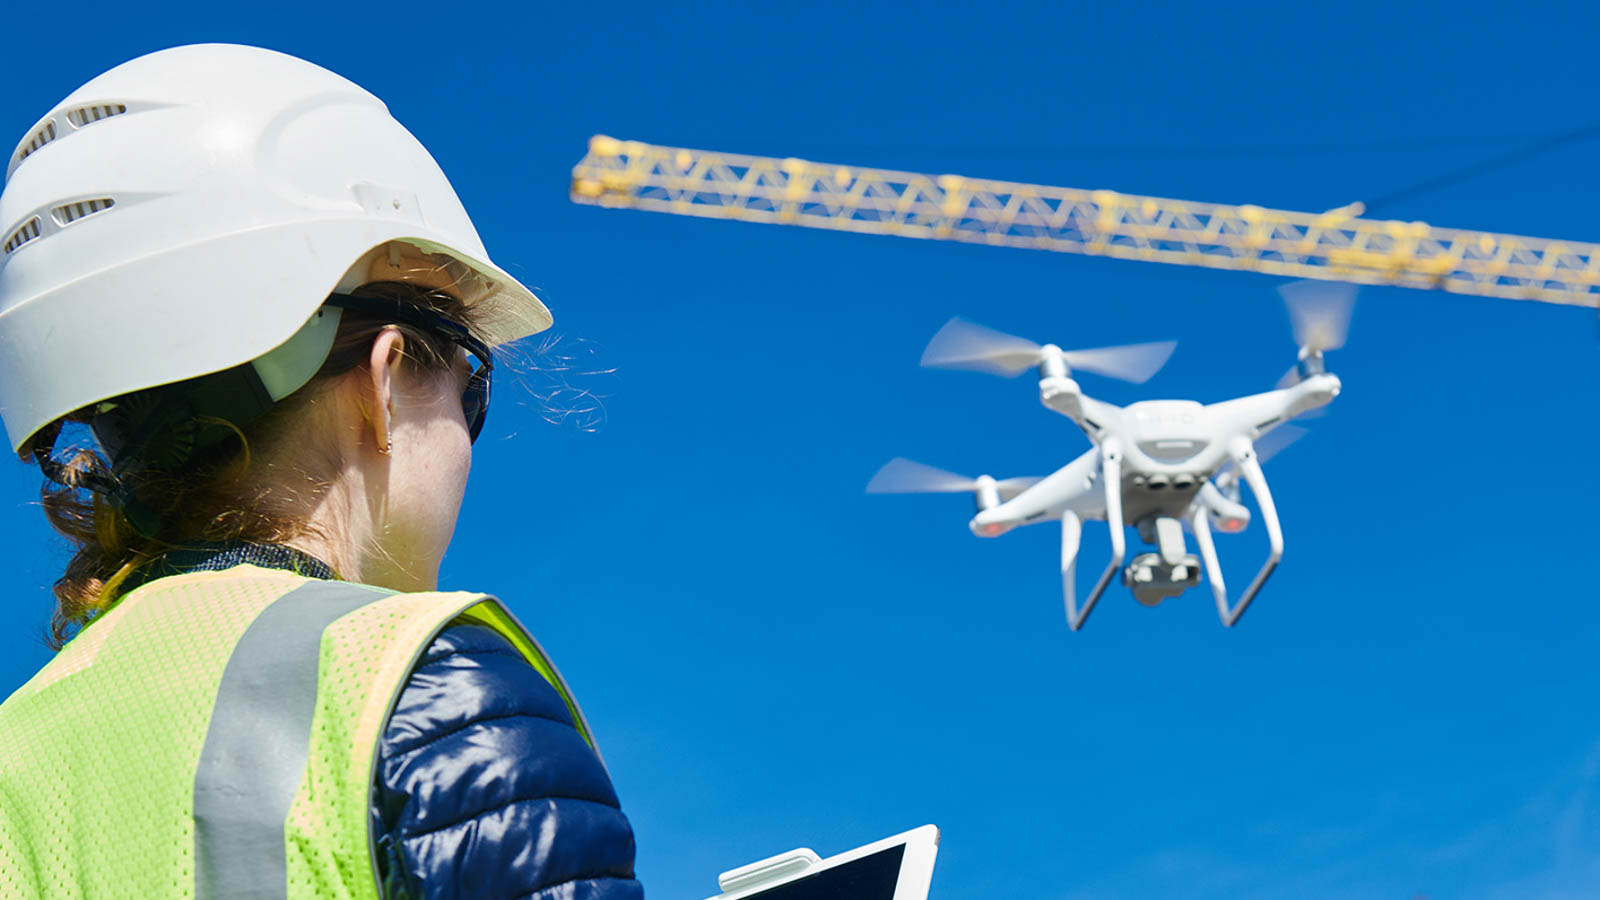 Drone inspection. Operator inspecting construction building site